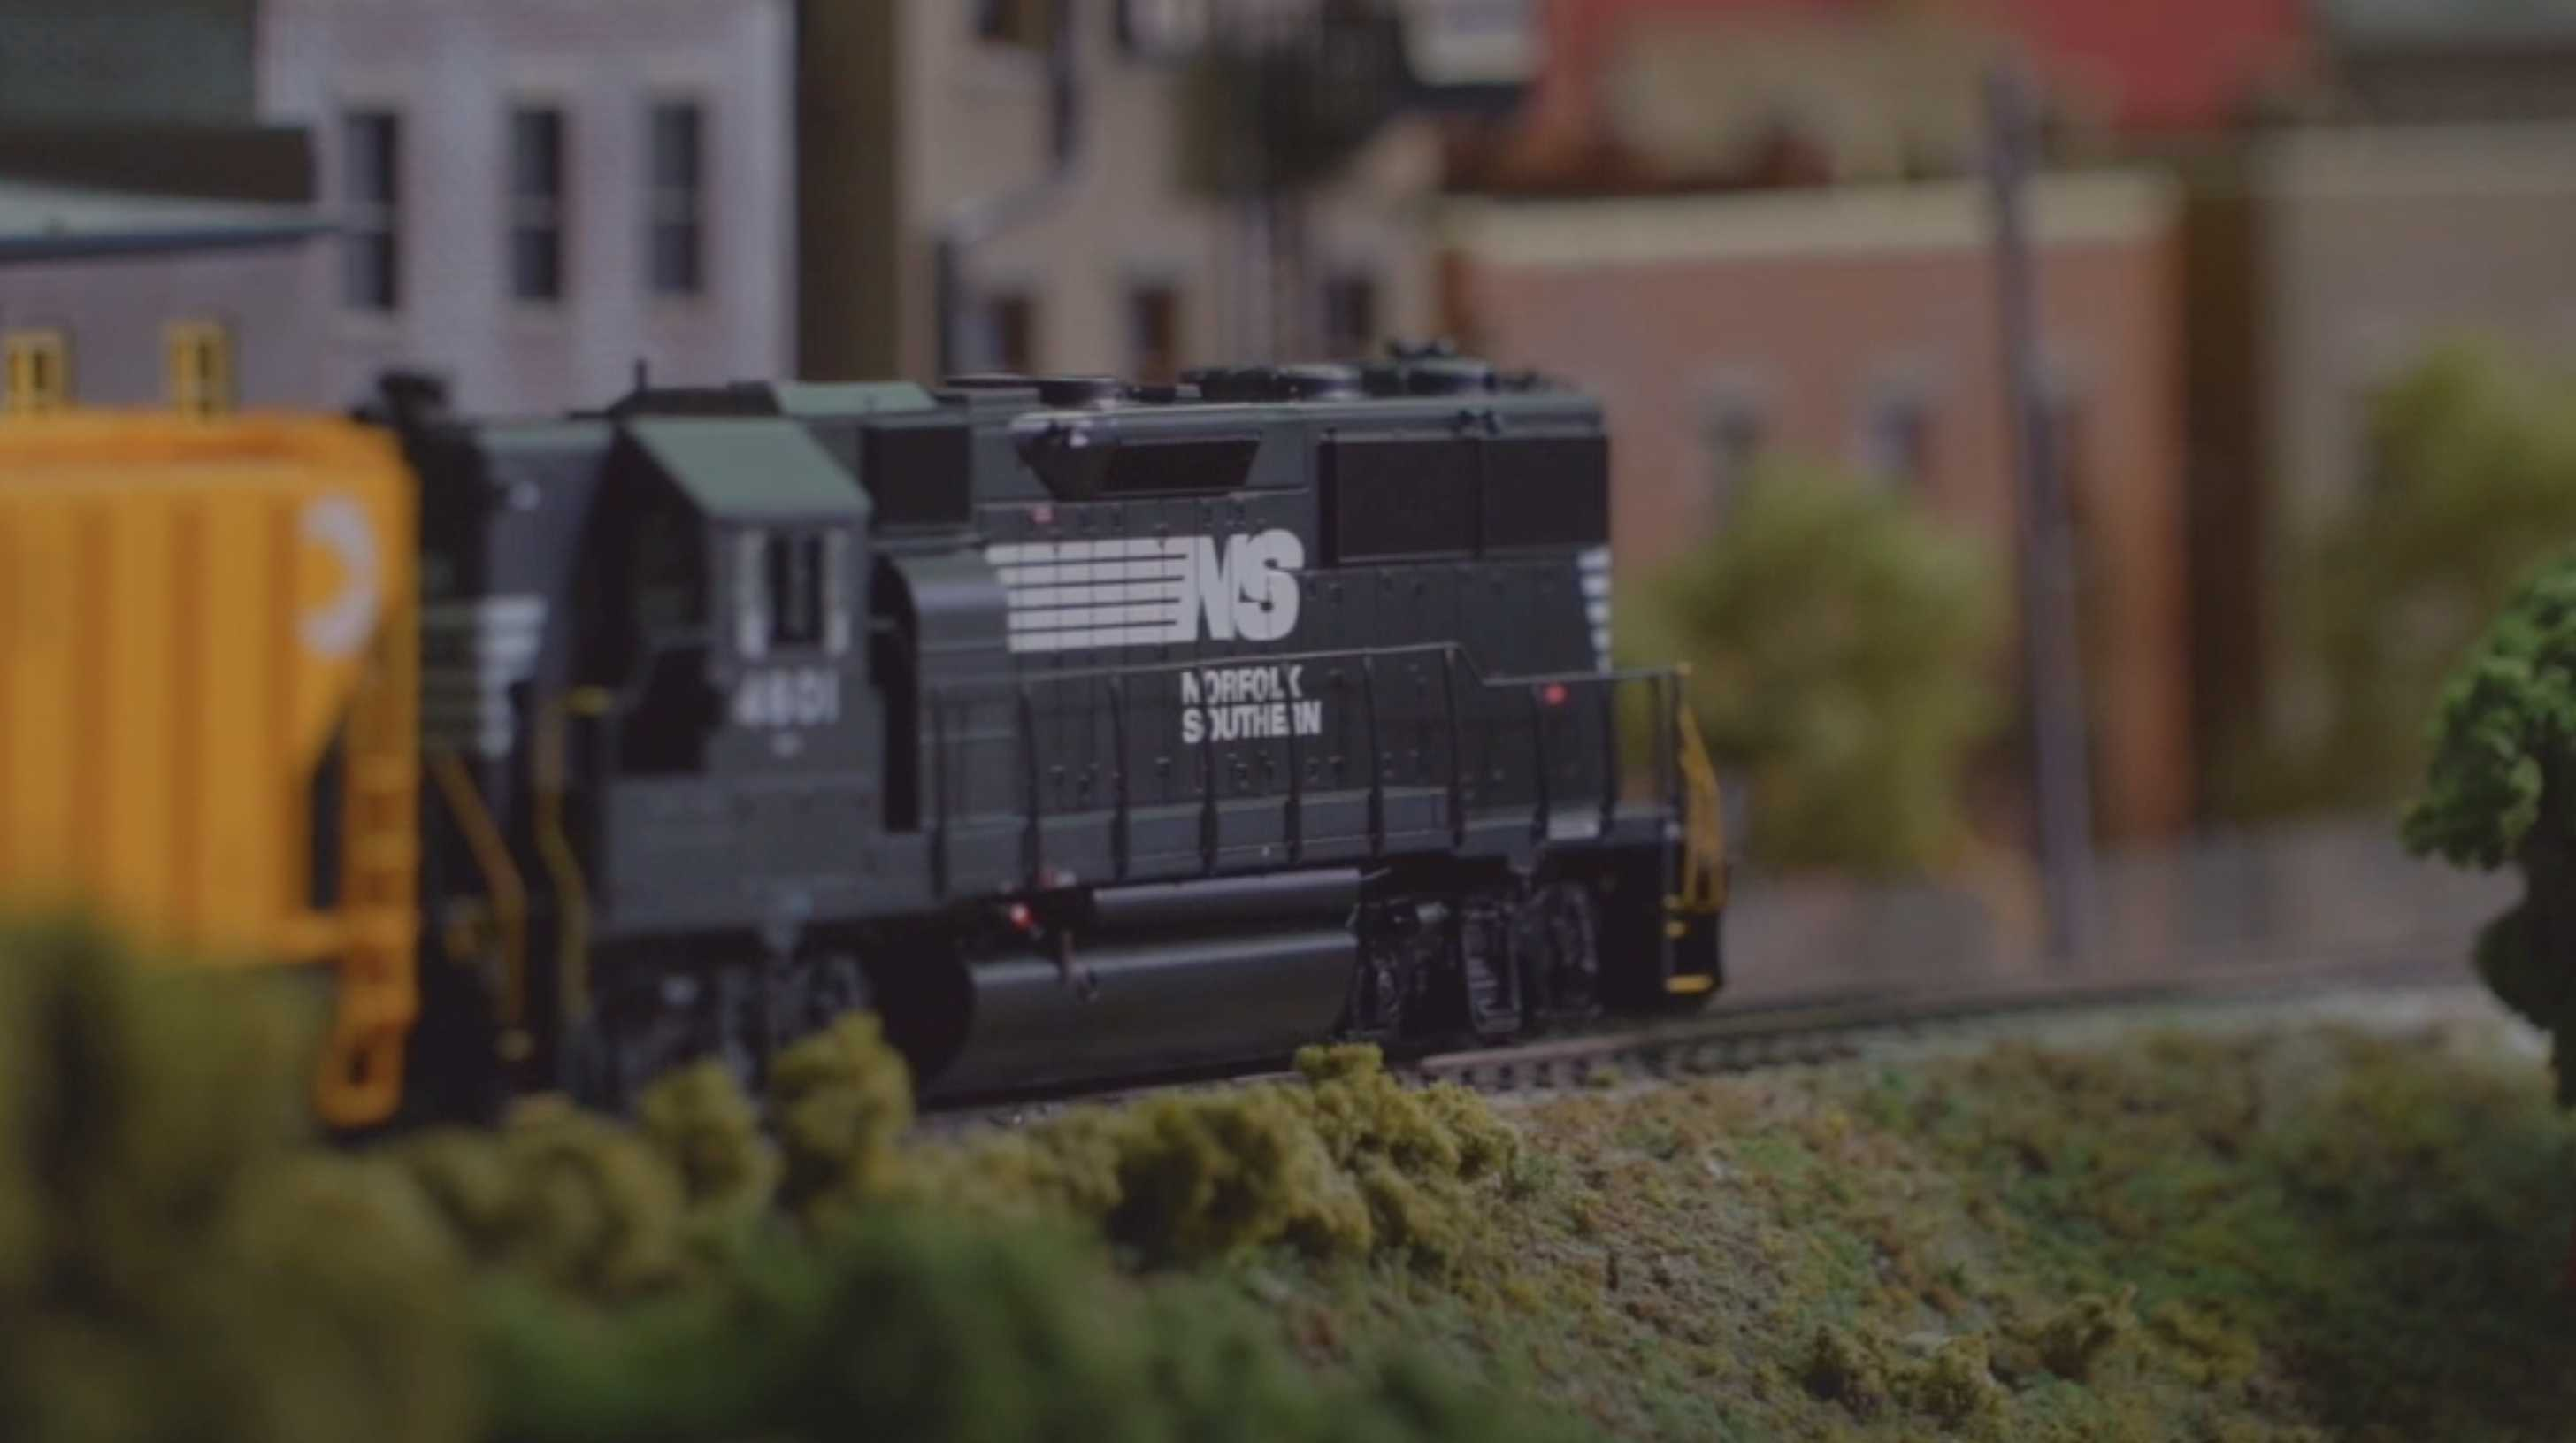 The Athearn Genesis HO Scale GP39X and GP49